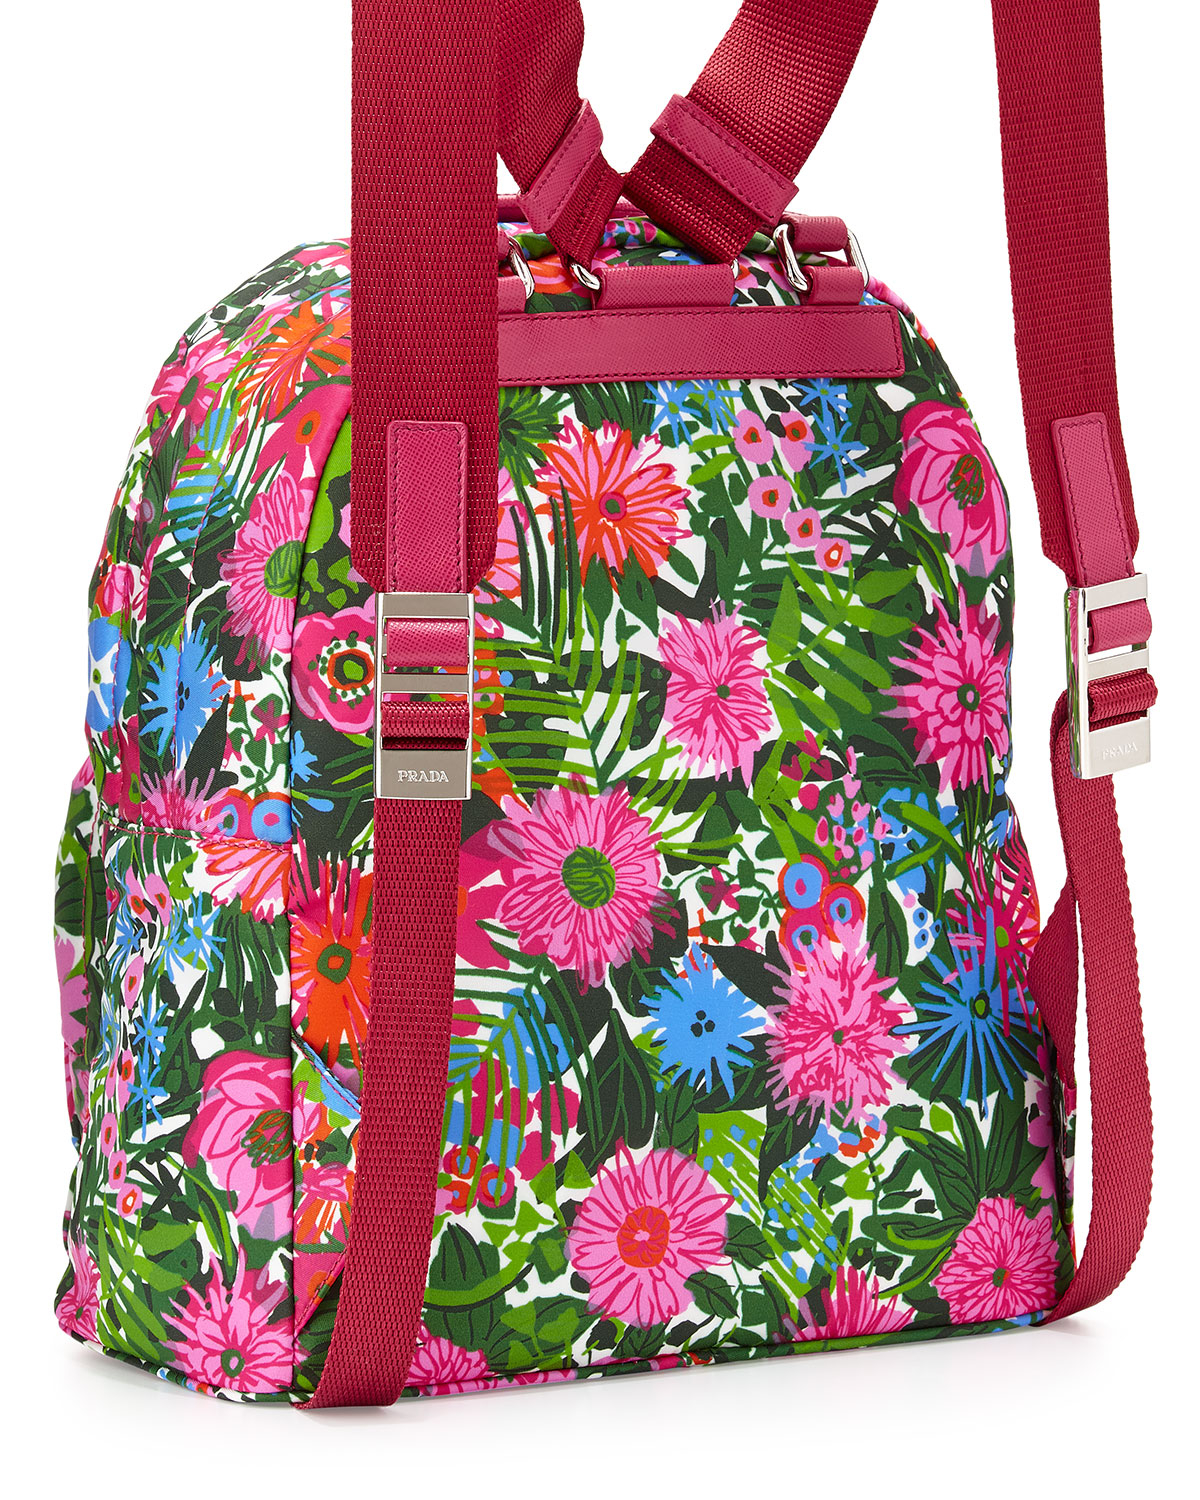 ... new arrivals lyst prada tessuto stampato floral backpack in blue 6bf70  25557 16bd837e2b111